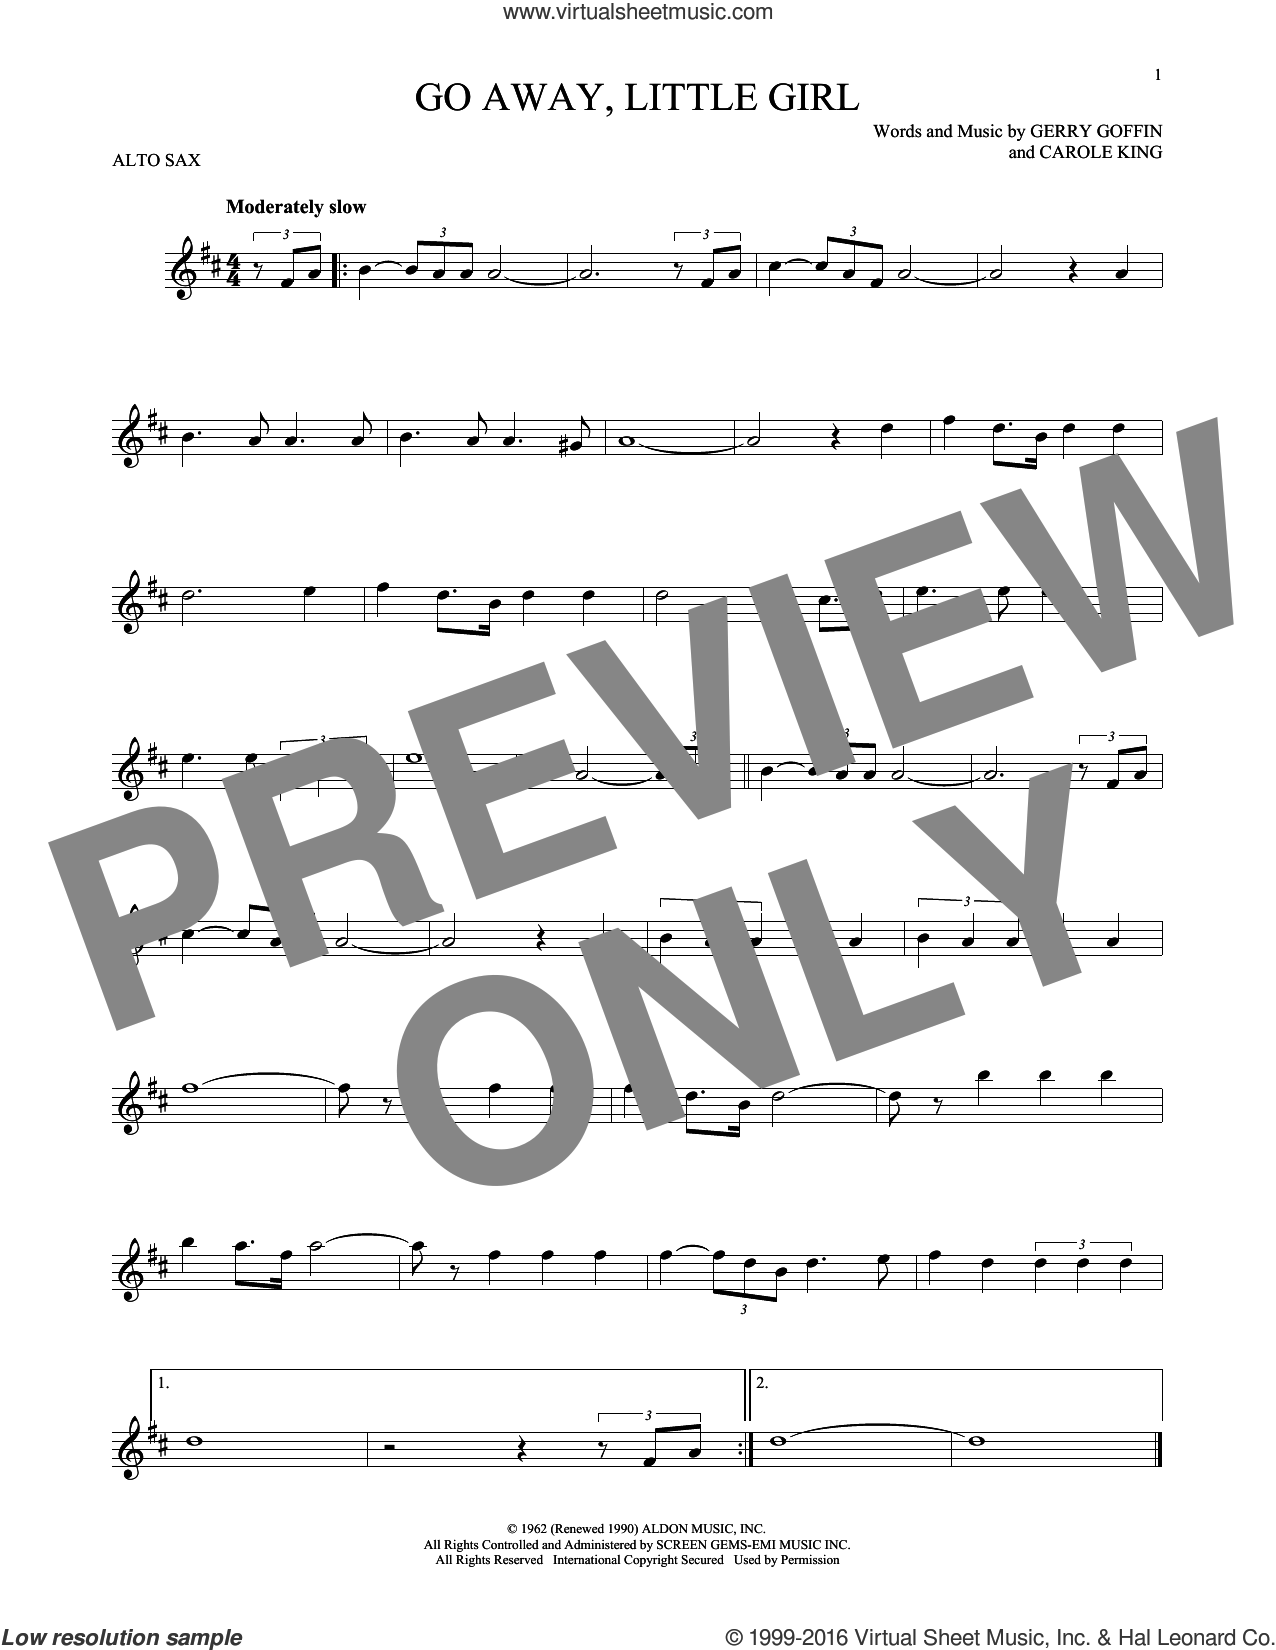 Go Away, Little Girl sheet music for alto saxophone solo by Gerry Goffin, Donny Osmond and Carole King. Score Image Preview.